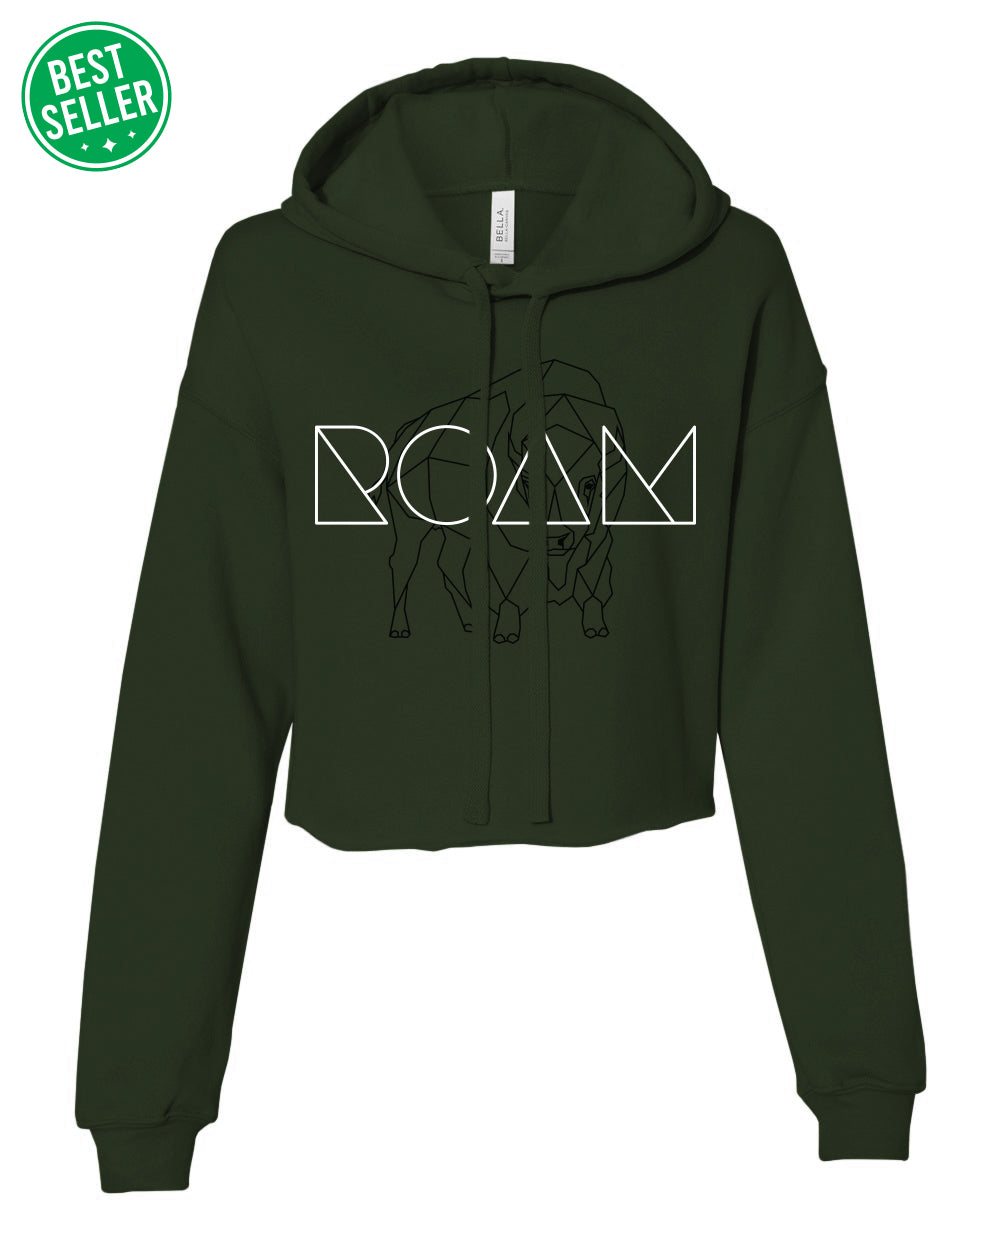 Women's Mosaic Overlay Crop Hoodie - Military Green - Front - BS